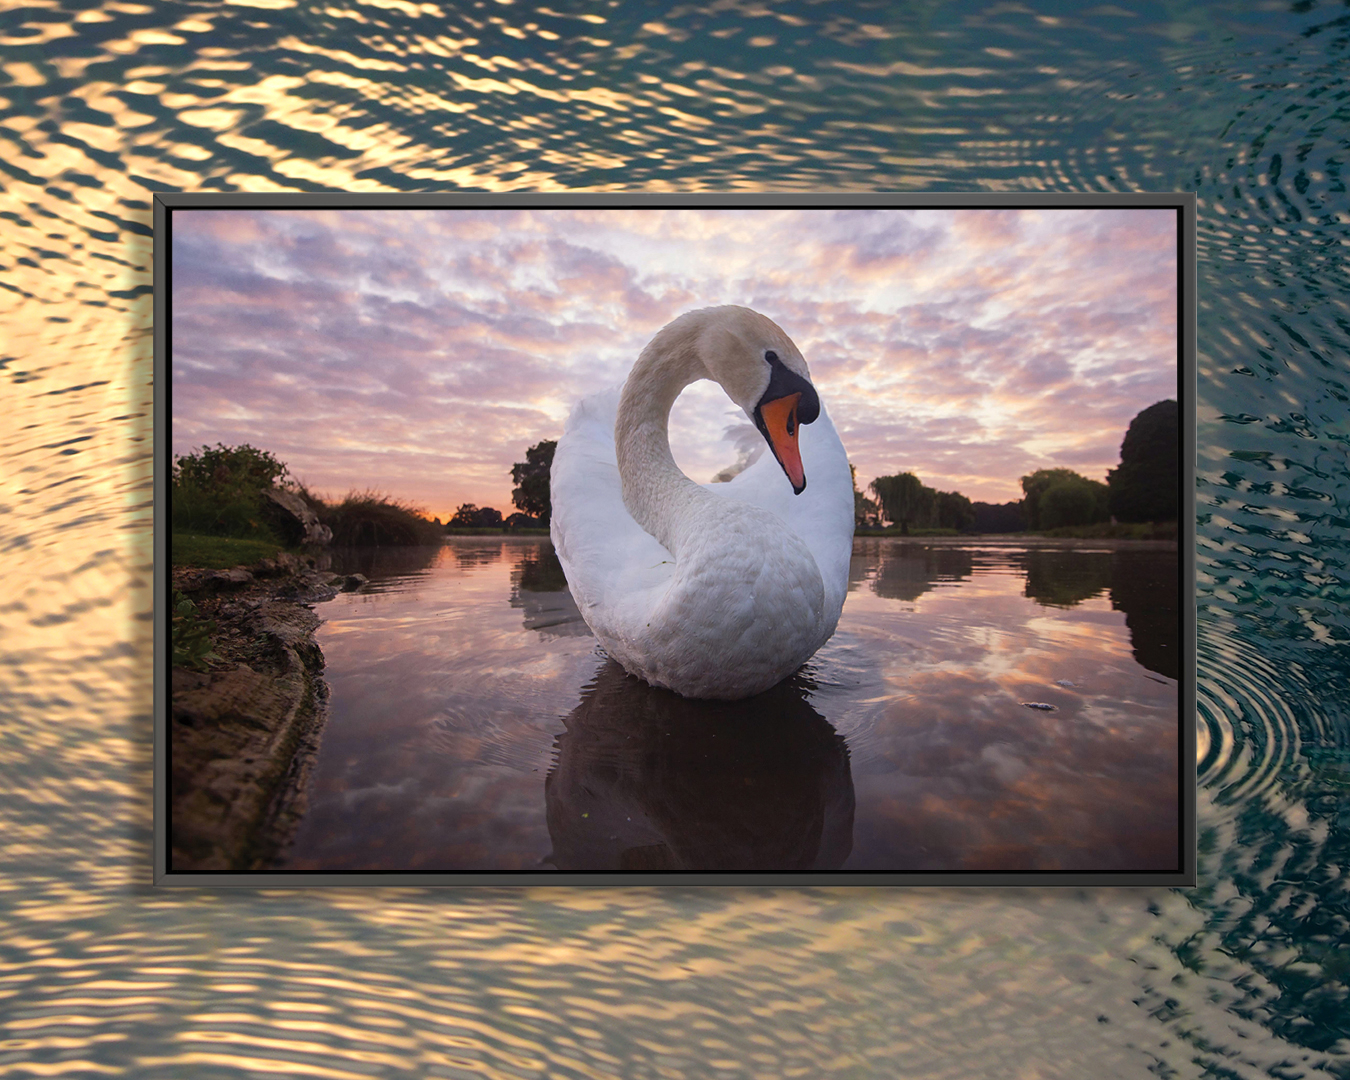 """""""Ying Yang Swan"""" by Max Ellis shows a swan in a lake with a cotton candy sky above it."""